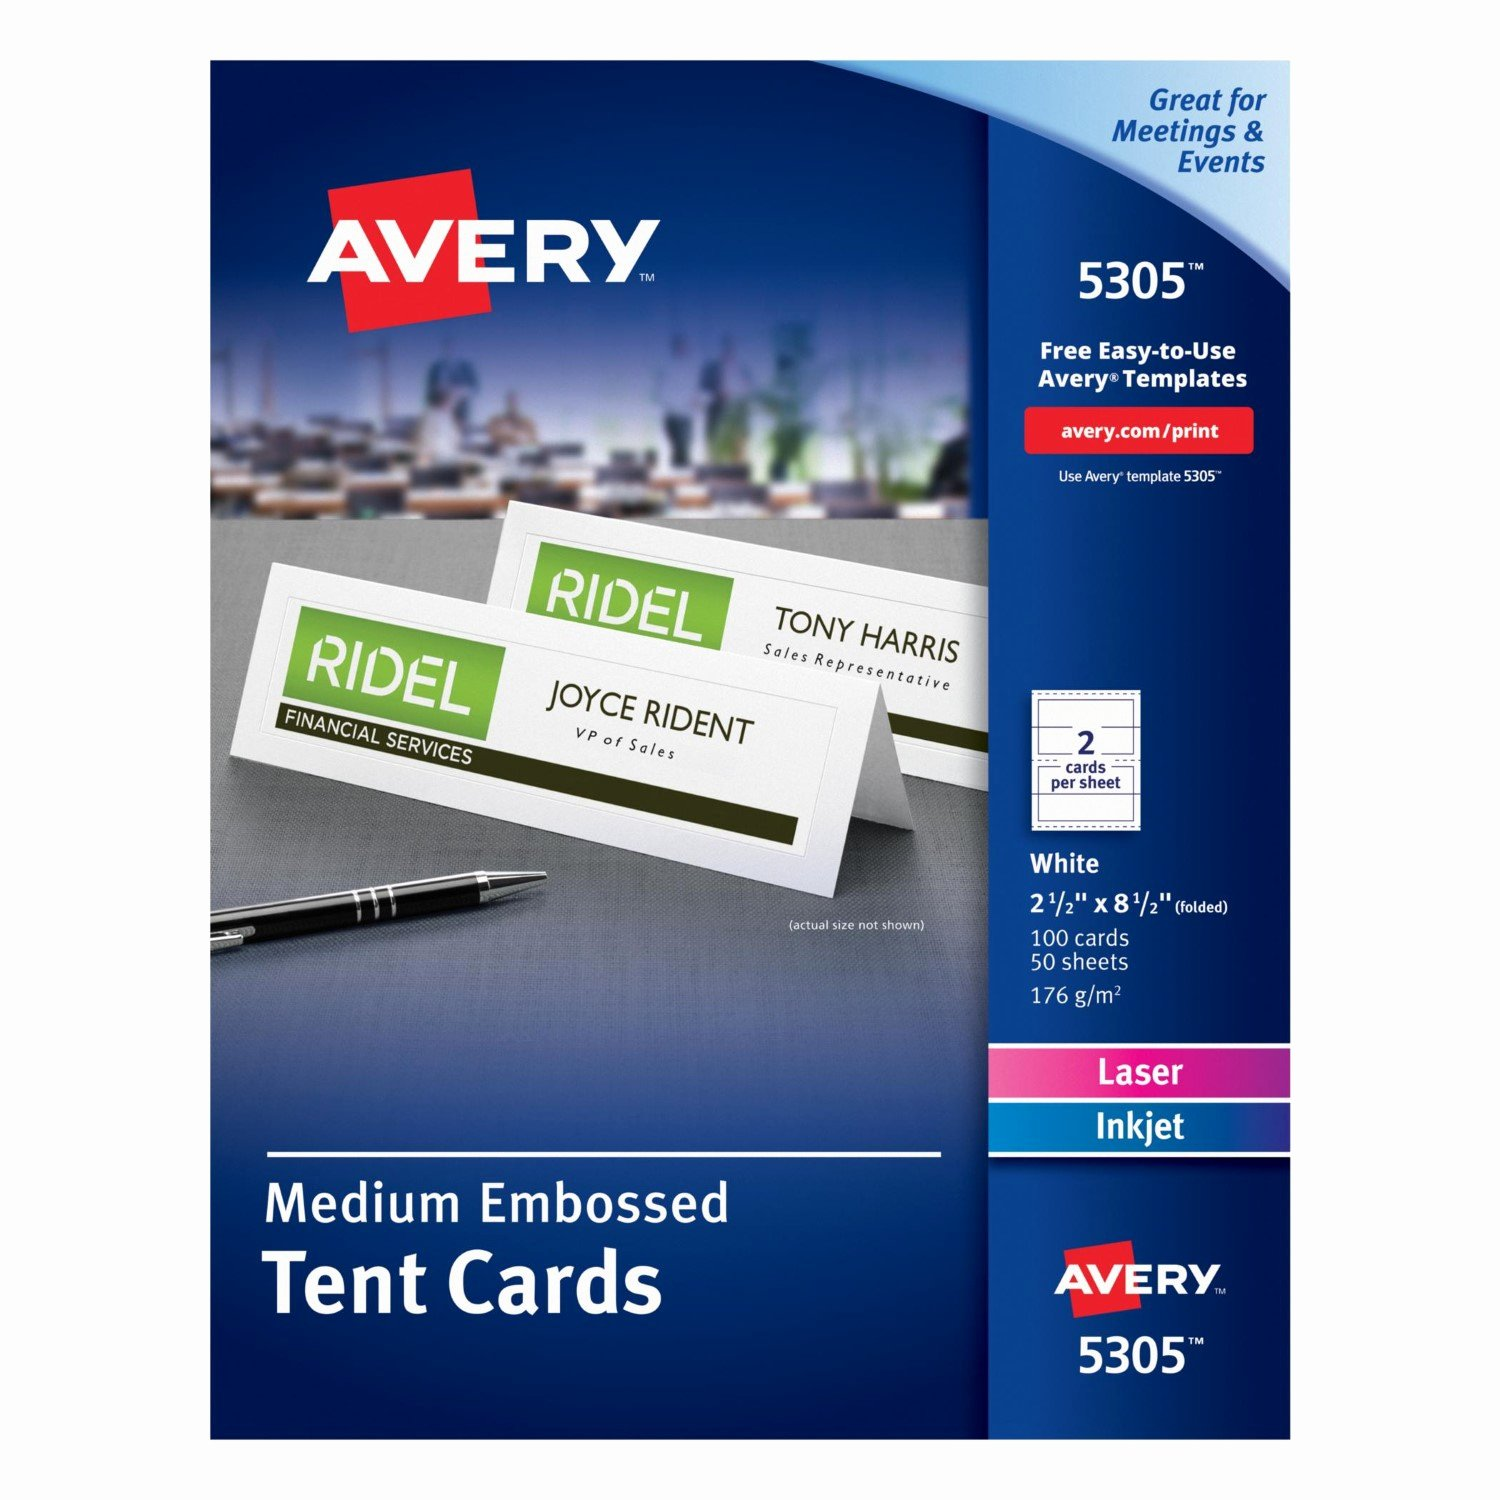 Tent Card Template 6 Per Sheet Best Of Avery Tent Cards 2 5 X 8 5 In White 100 Count 5305